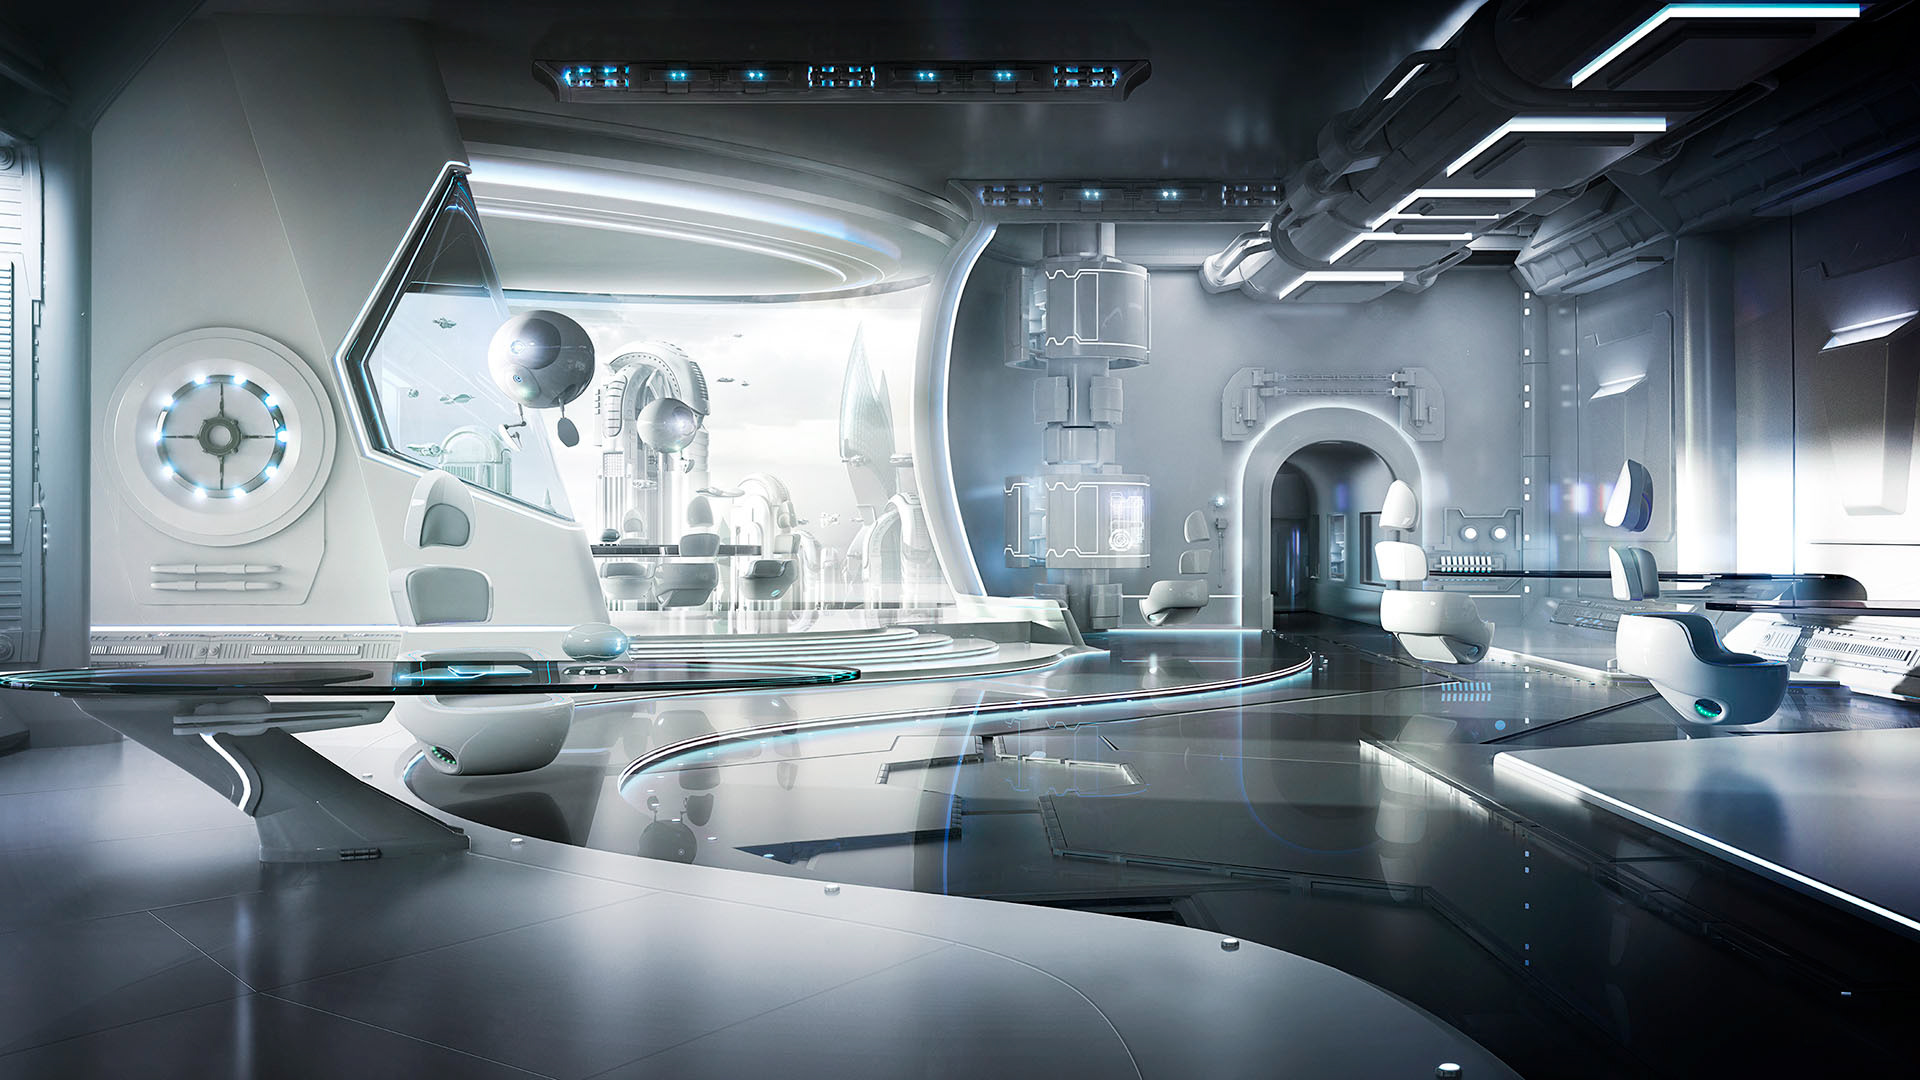 Workplace trends of the future - 2117